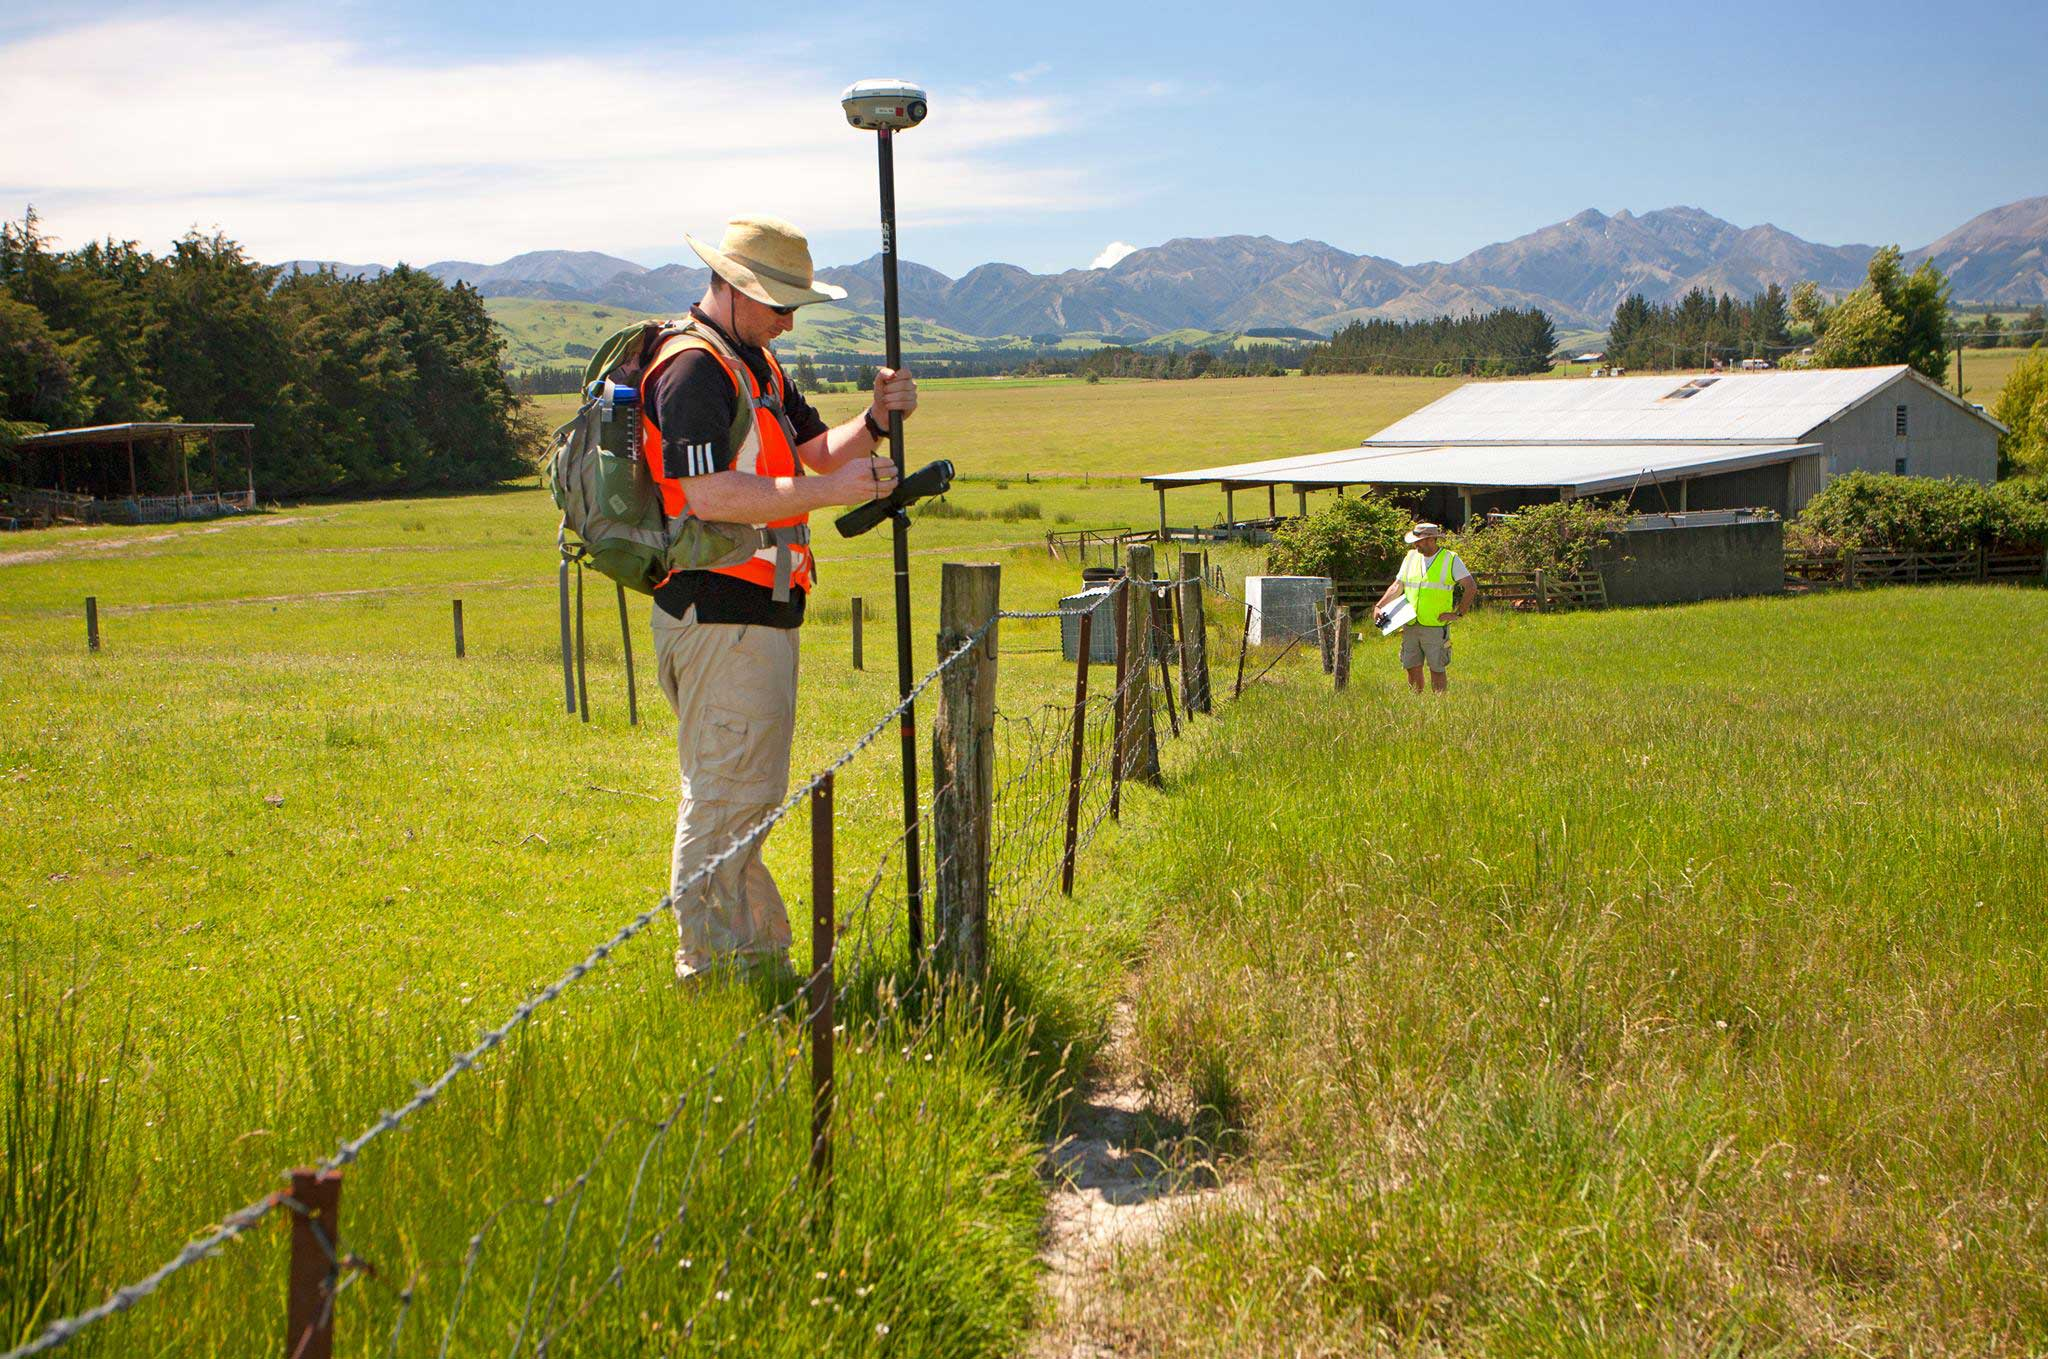 University of Michigan postdoctoral researcher Timothy Stahl uses GPS technology to measure displacement of a fence in New Zealand following November's magnitude-7.8 earthquake. Fence posts in the mid-ground were moved to the right by motion of the fault during the earthquake. Image credit: Kate Pedley